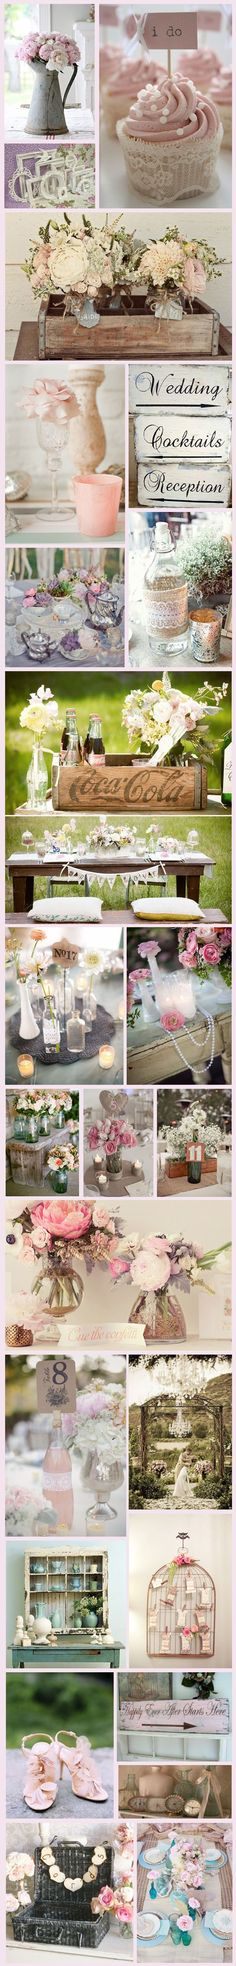 So many inspiring ideas for a shabby chic wedding@  Pinned by Afloral.com from http://www.bespoke-bride.com/2012/06/27/wednesday-wedding-inspiration-we-%E2%99%A5-shabby-chic/ ~Find silk flowers and decorations to DIY your rustic vintage wedding.